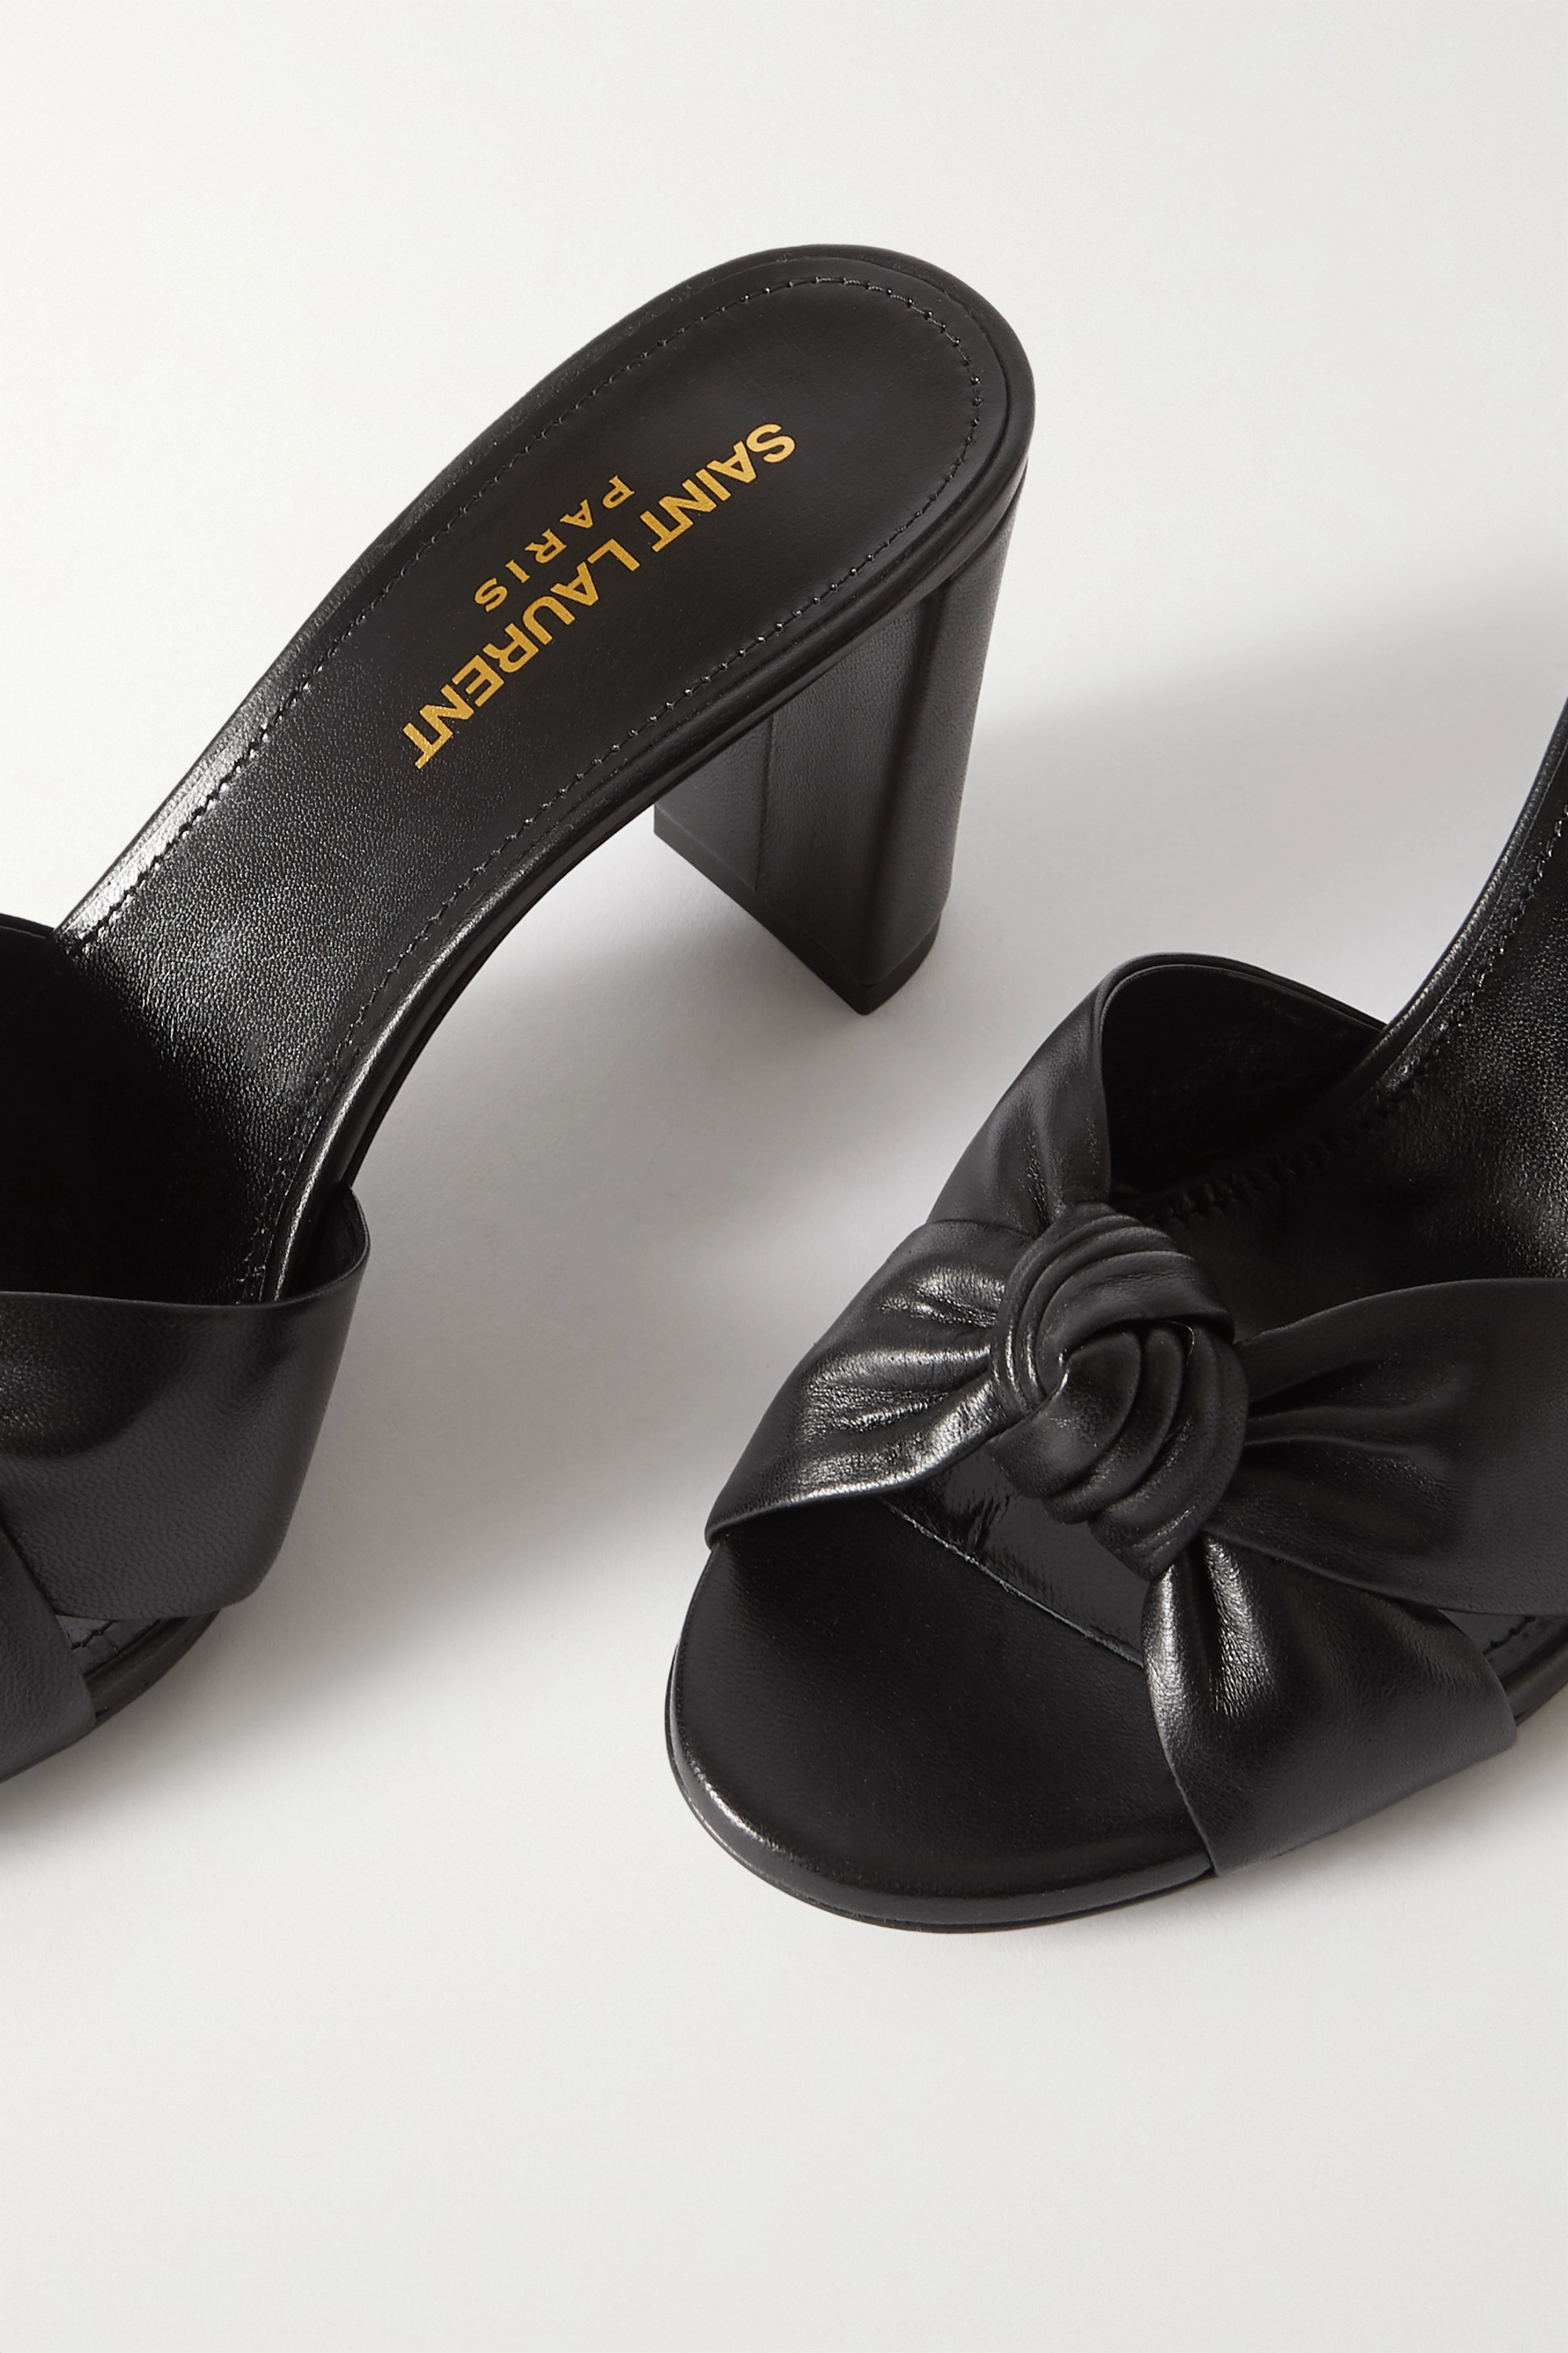 SAINT LAURENT Bianca knotted leather mules